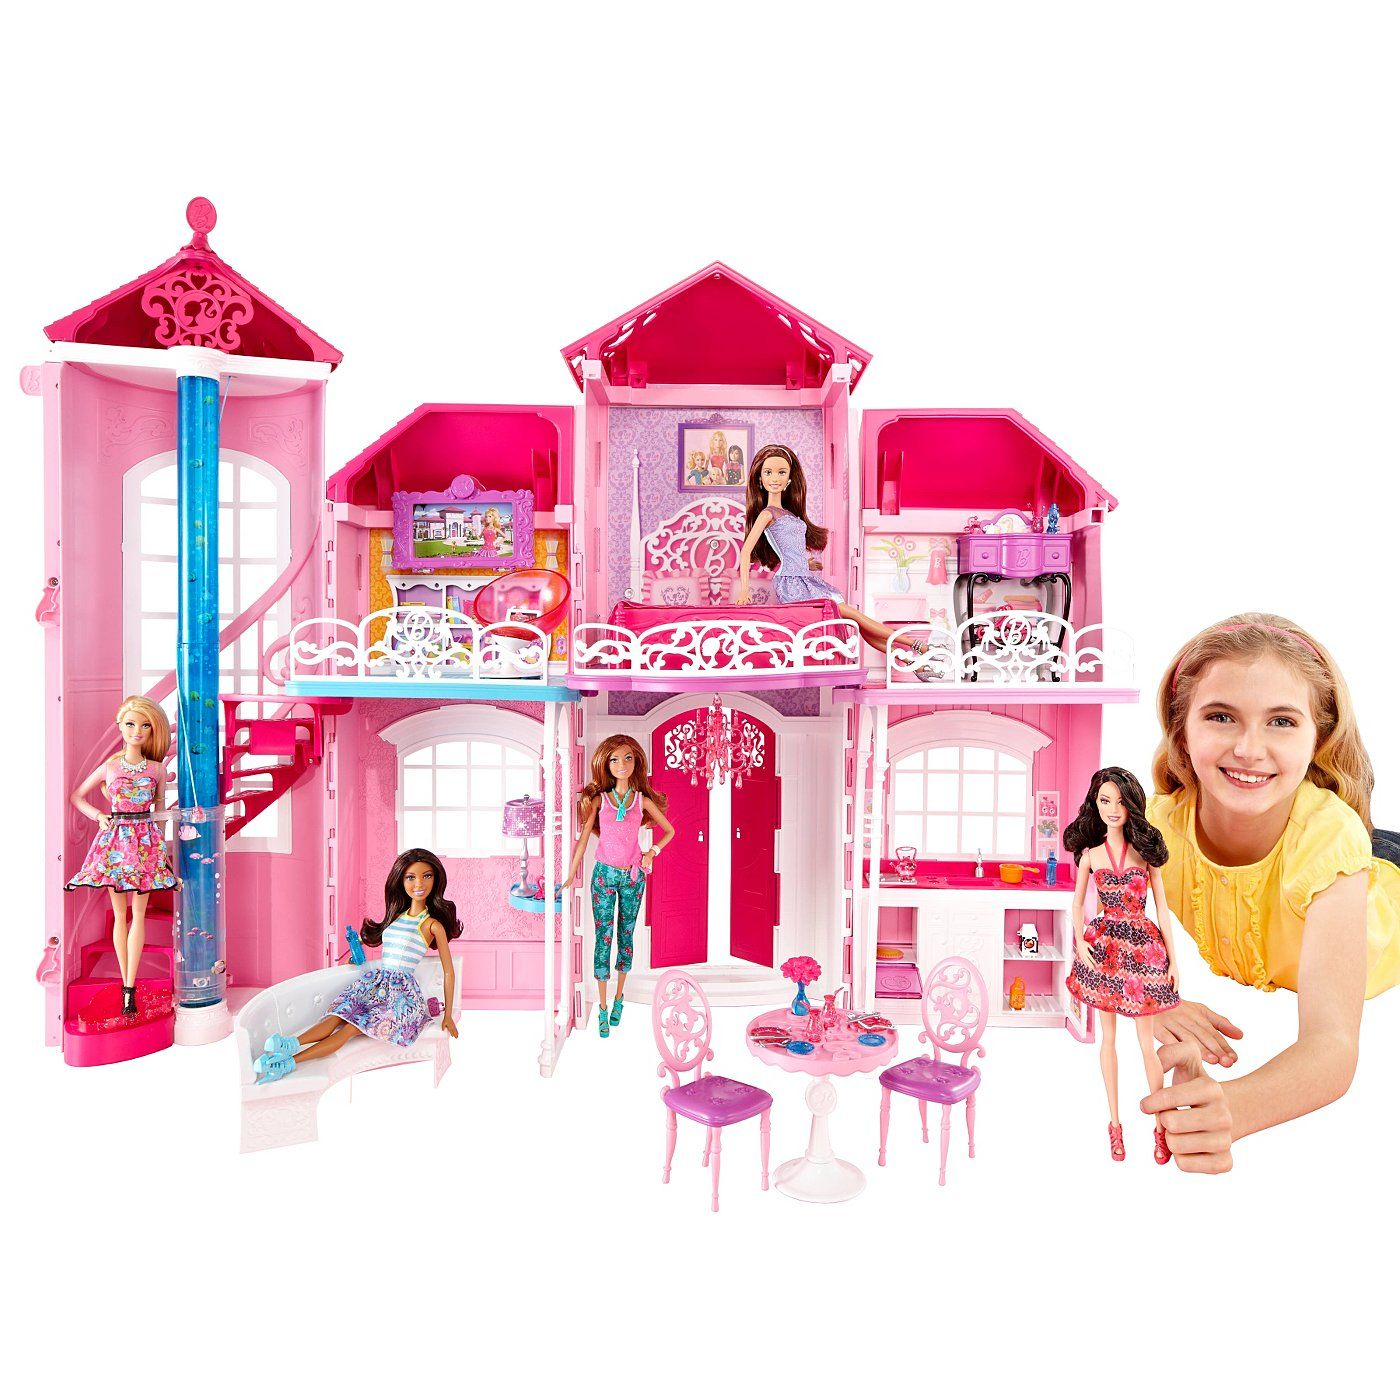 Barbie Malibu House read reviews and online at ASDA Direct